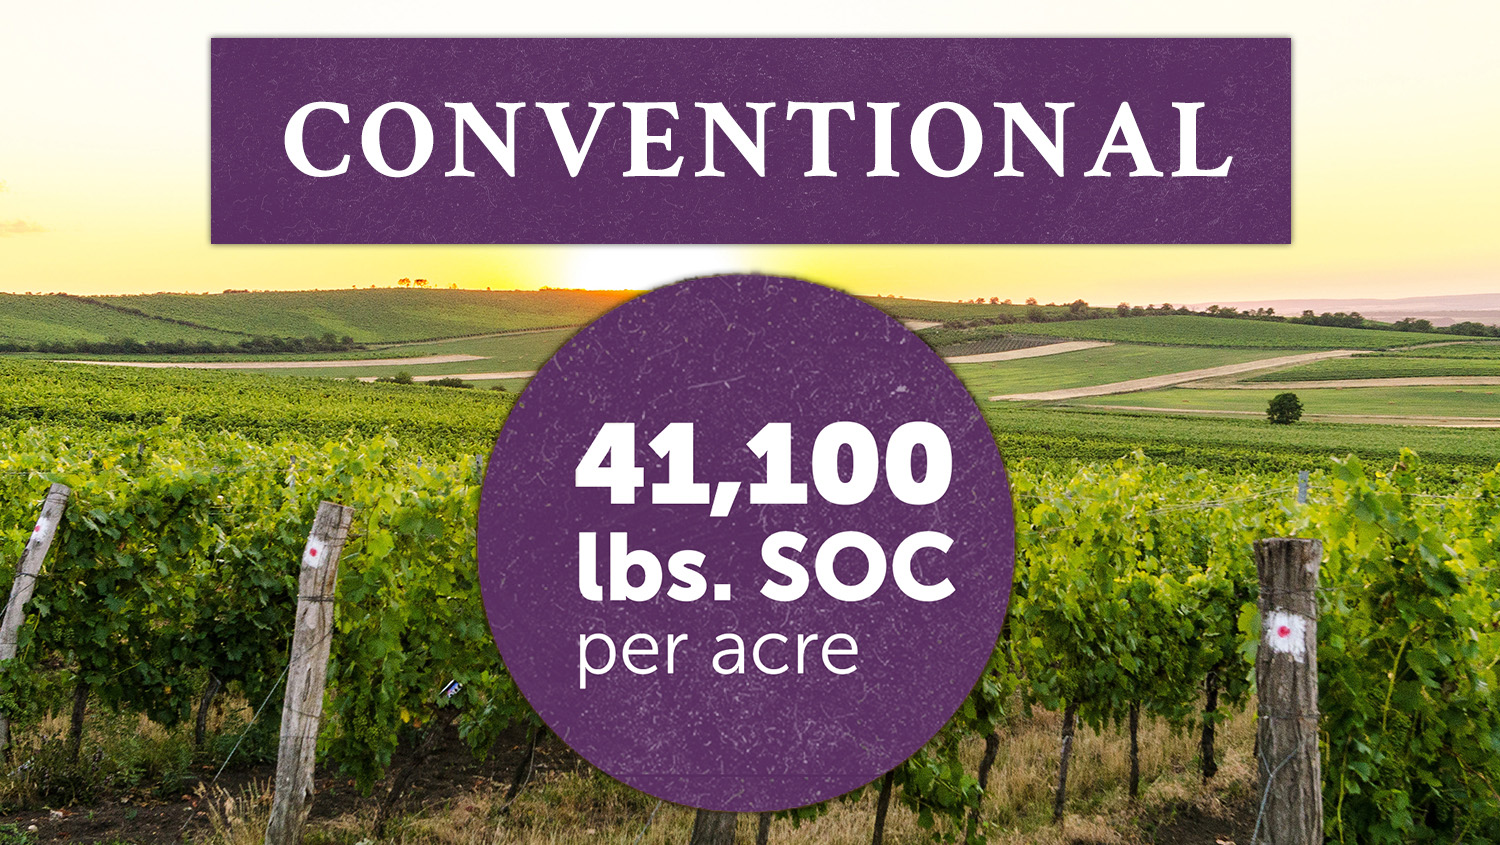 Bonterra's vineyards farmed with Biodynamic and organic practices correlate with greater SOC levels than those found in a similar vineyard site farmed conventionally and shown to hold 41,100 lbs SOC.